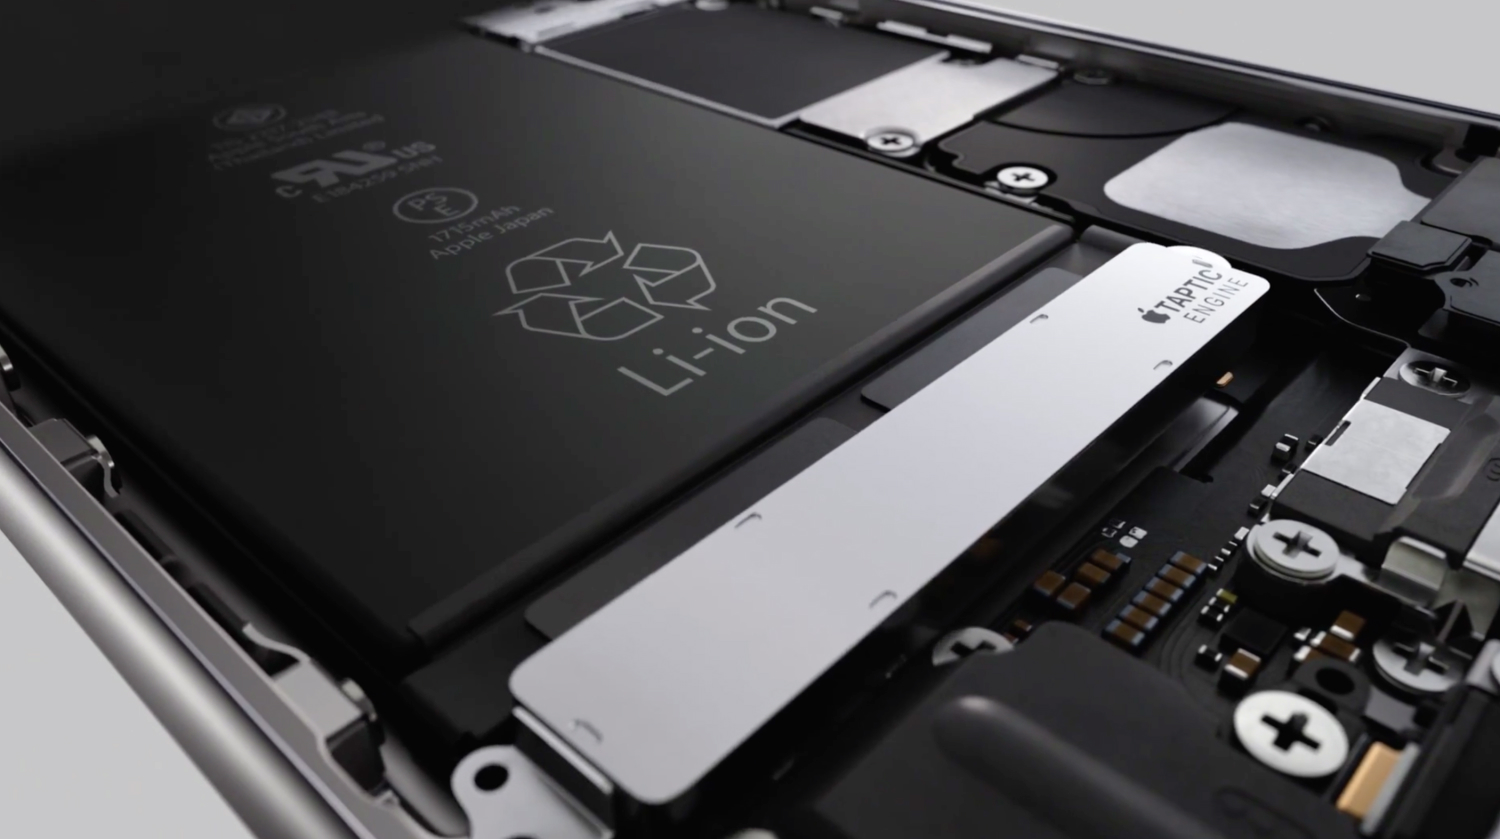 Lithium Ion Battery Stanford Researchers